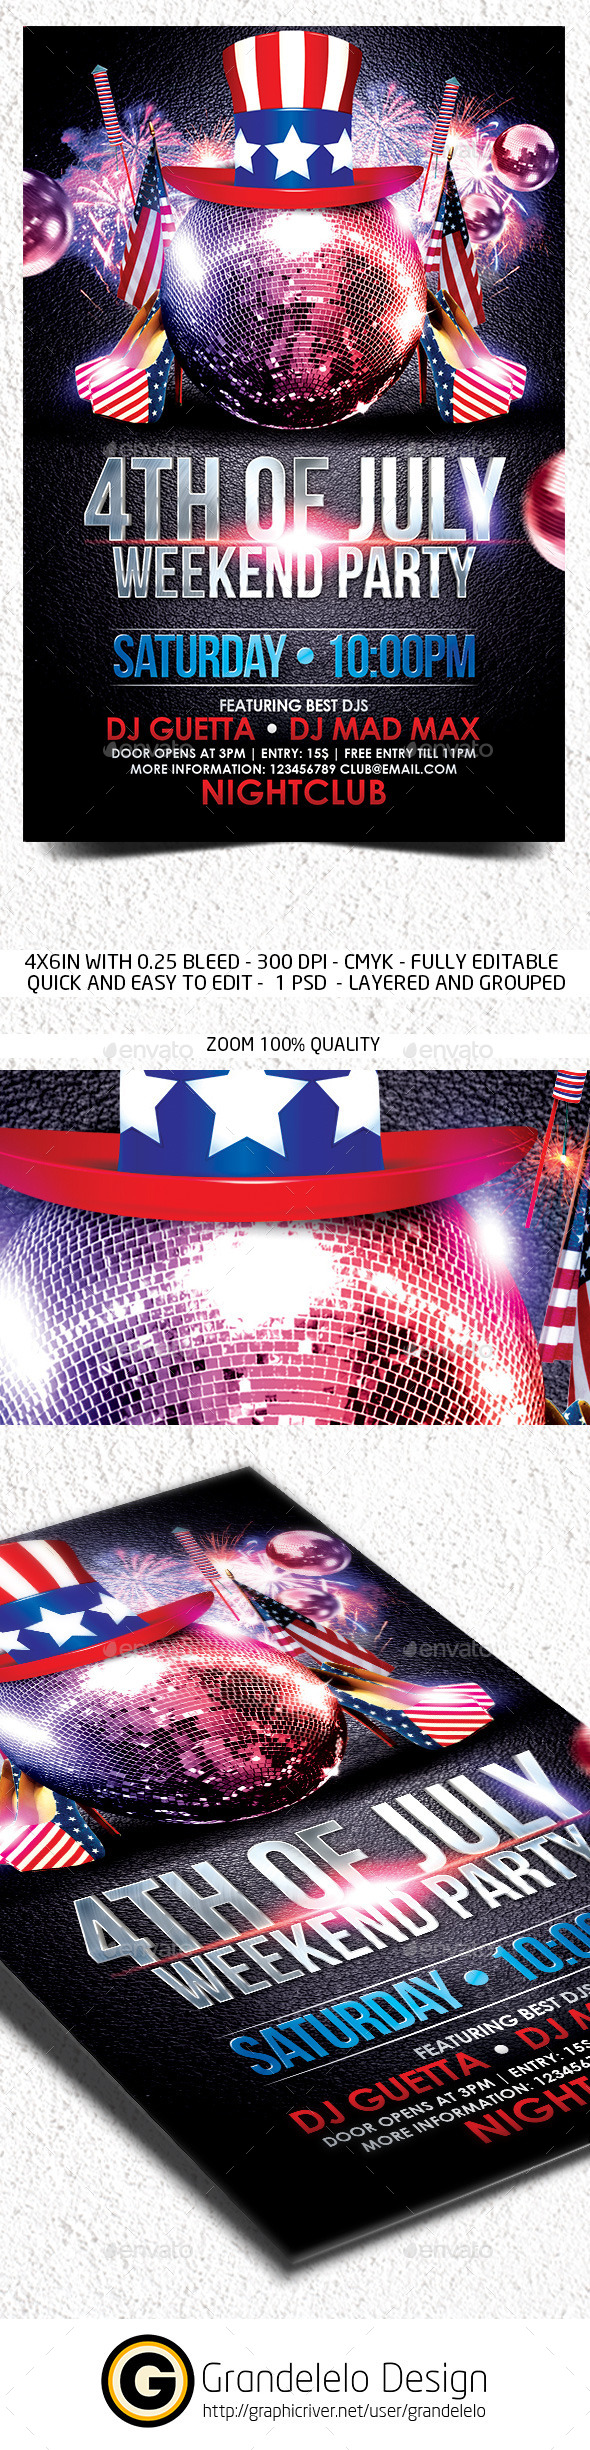 4th July Weekend Flyer Template - Clubs & Parties Events